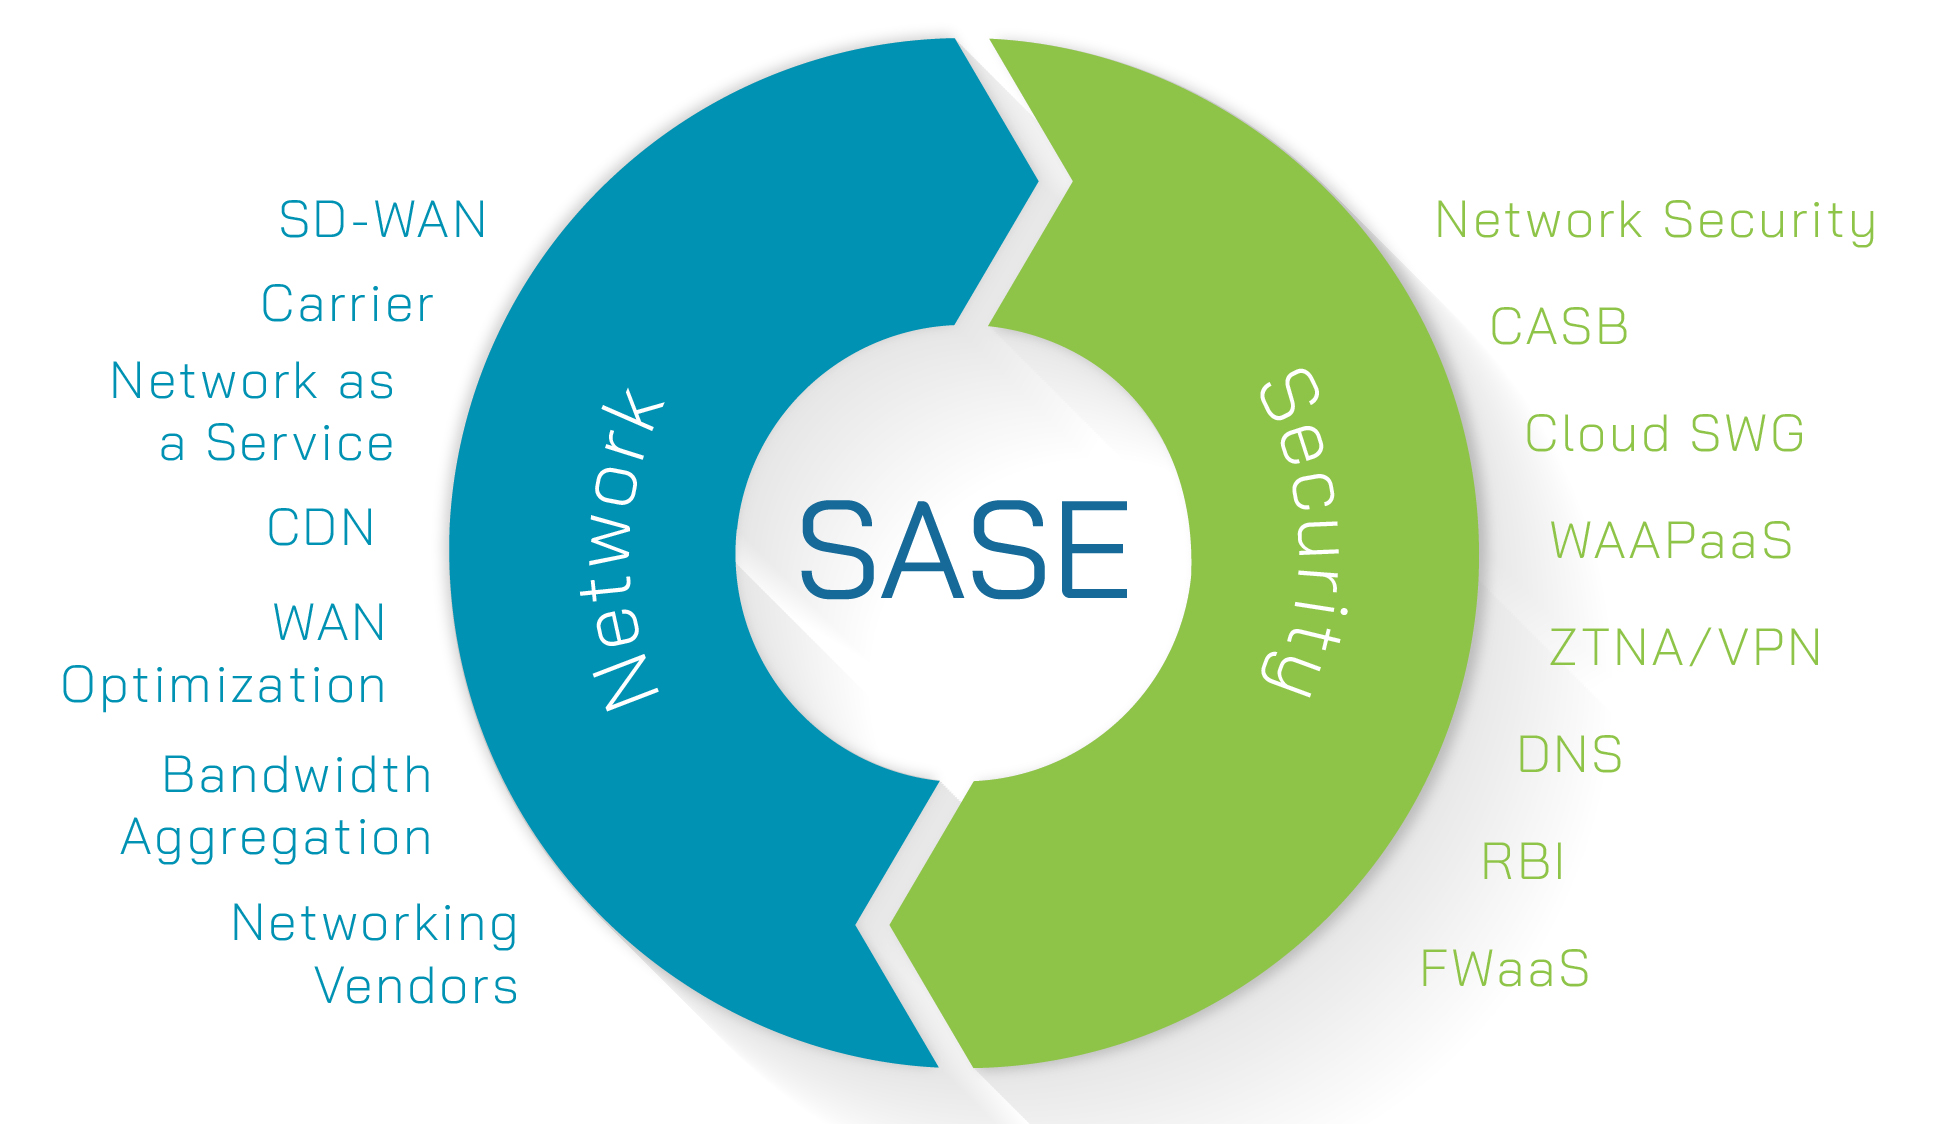 SASE - Secure Access Service Edge